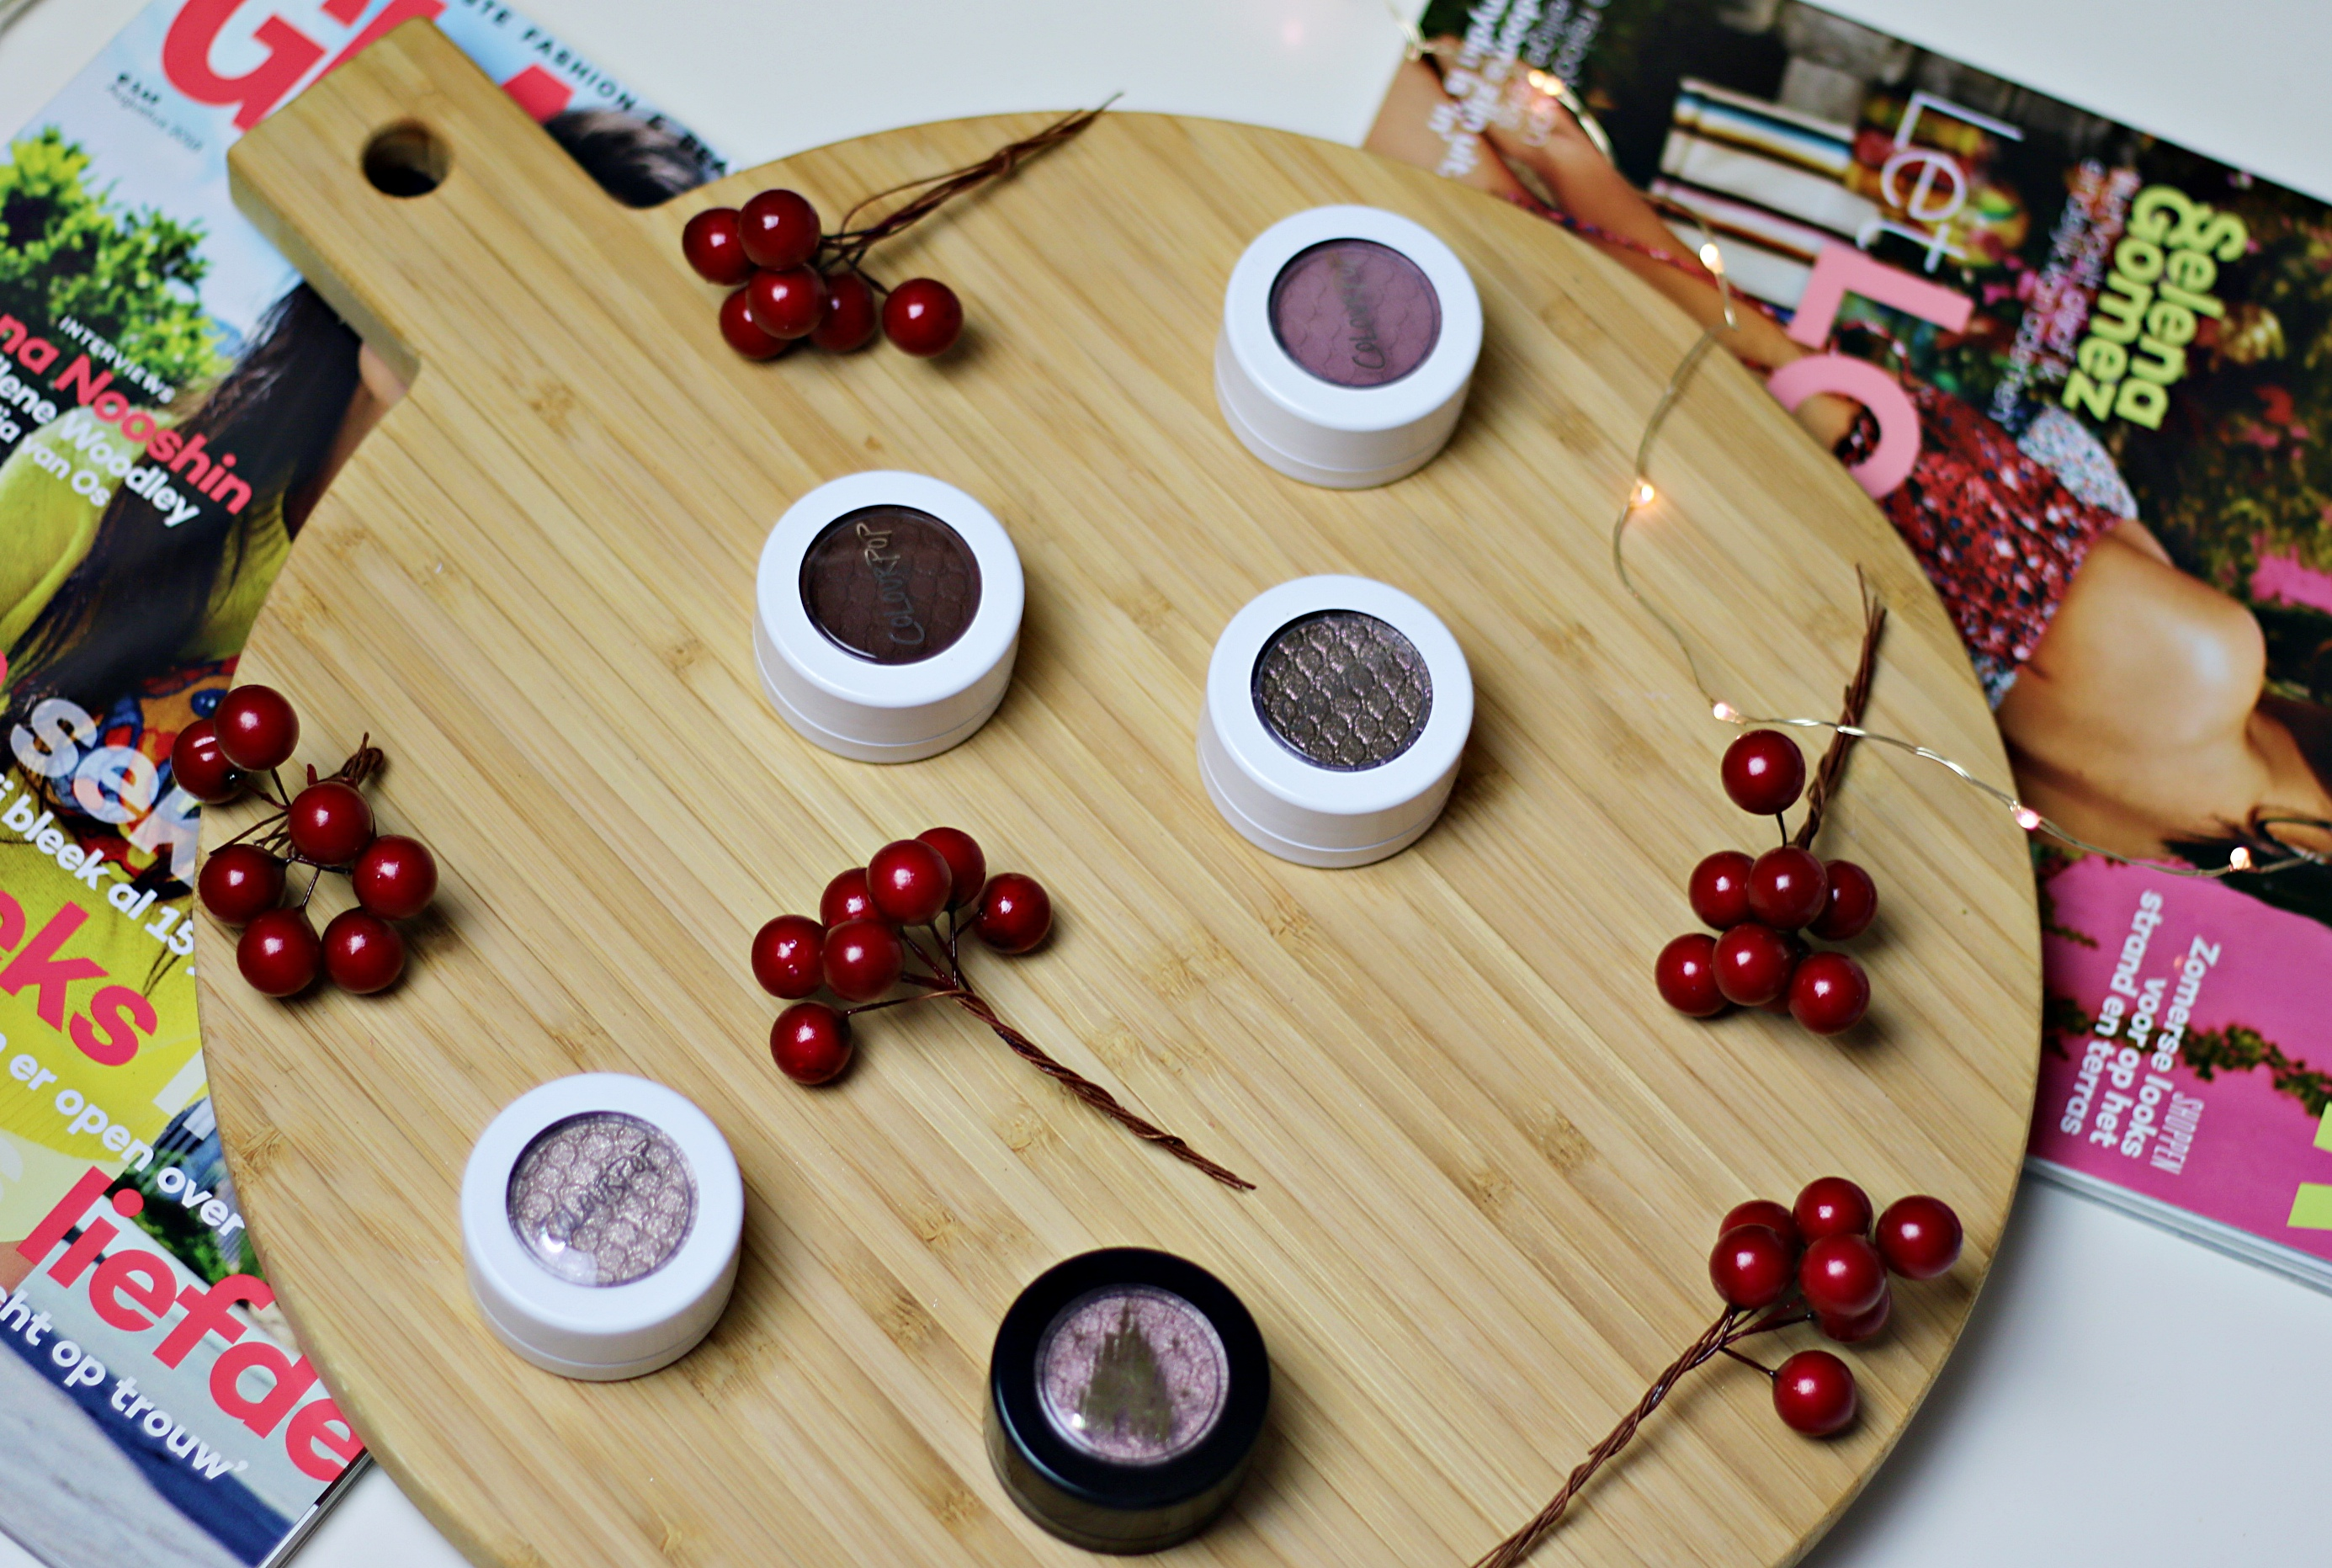 Colourpop Super Shock Shadows in I Heart This, So Quiche, Bill, So This Is Love And Pretty Lucky